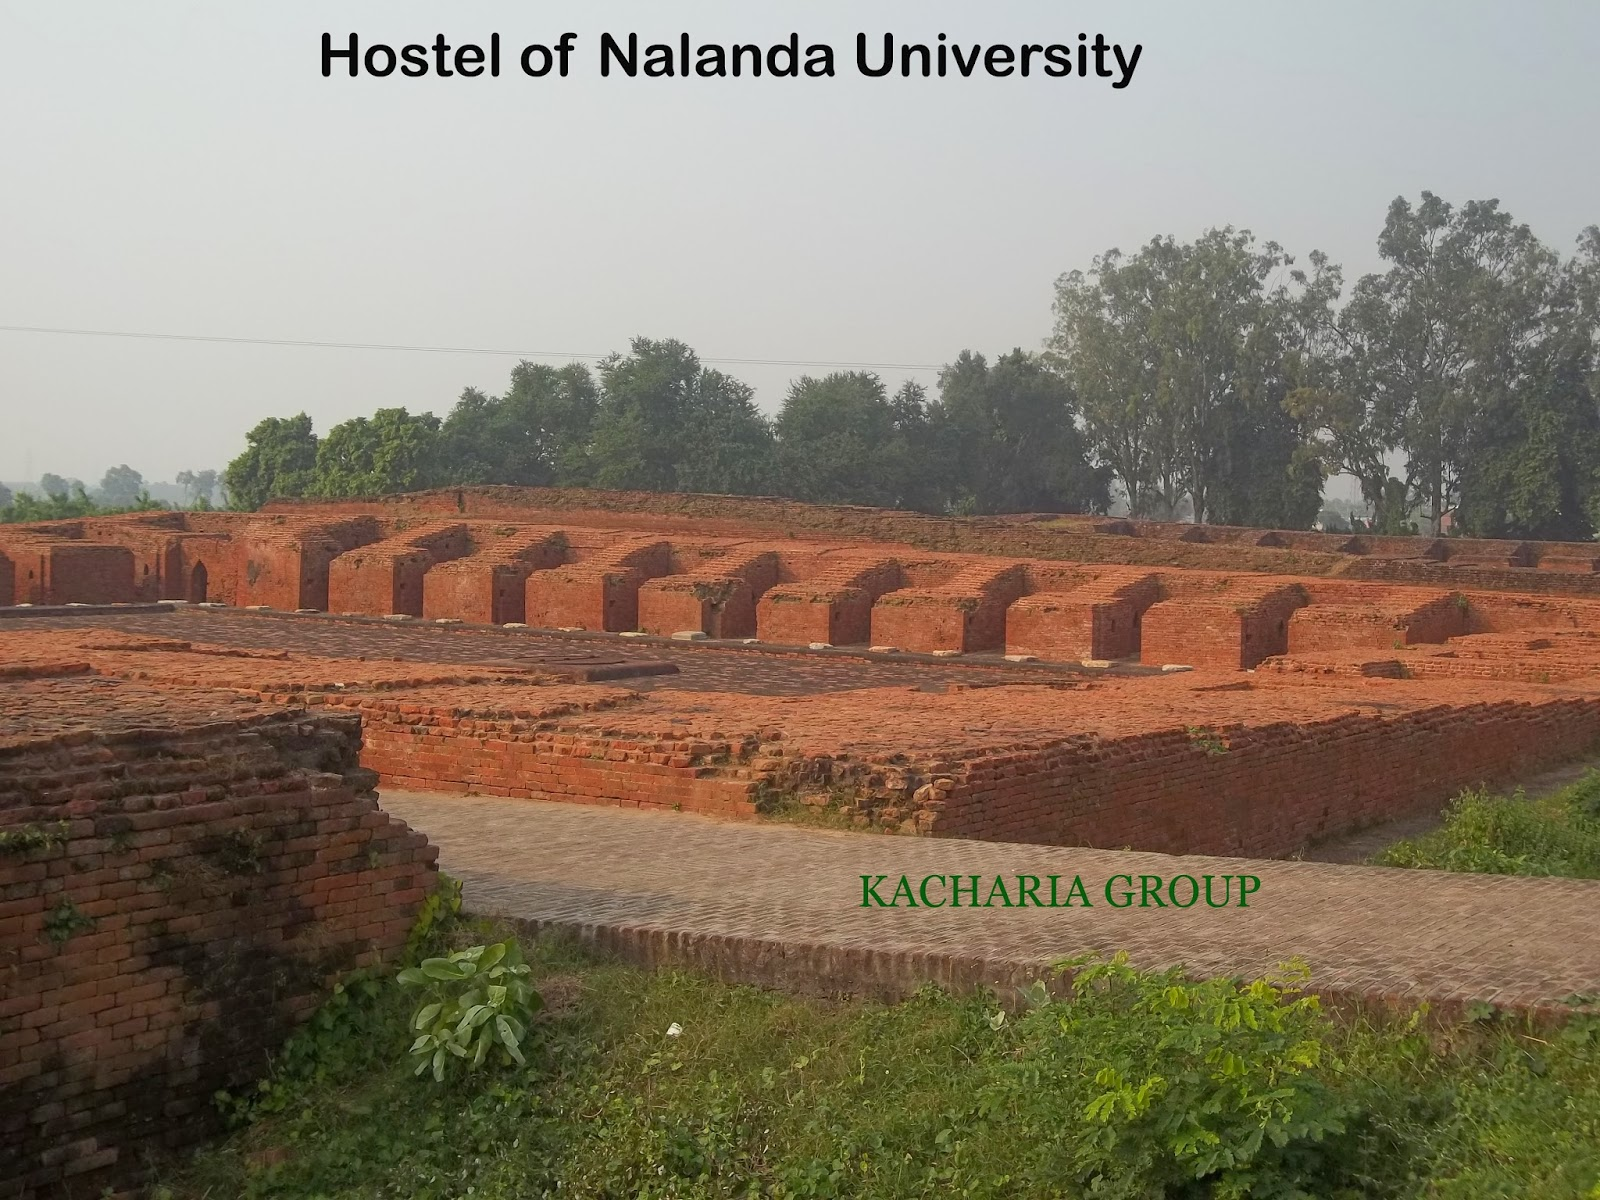 essay on nalanda university Nalanda university full-text content uploaded by shatarupa dutta author  content book review- themes in south asian history shatarupa duttadocx 22  b.